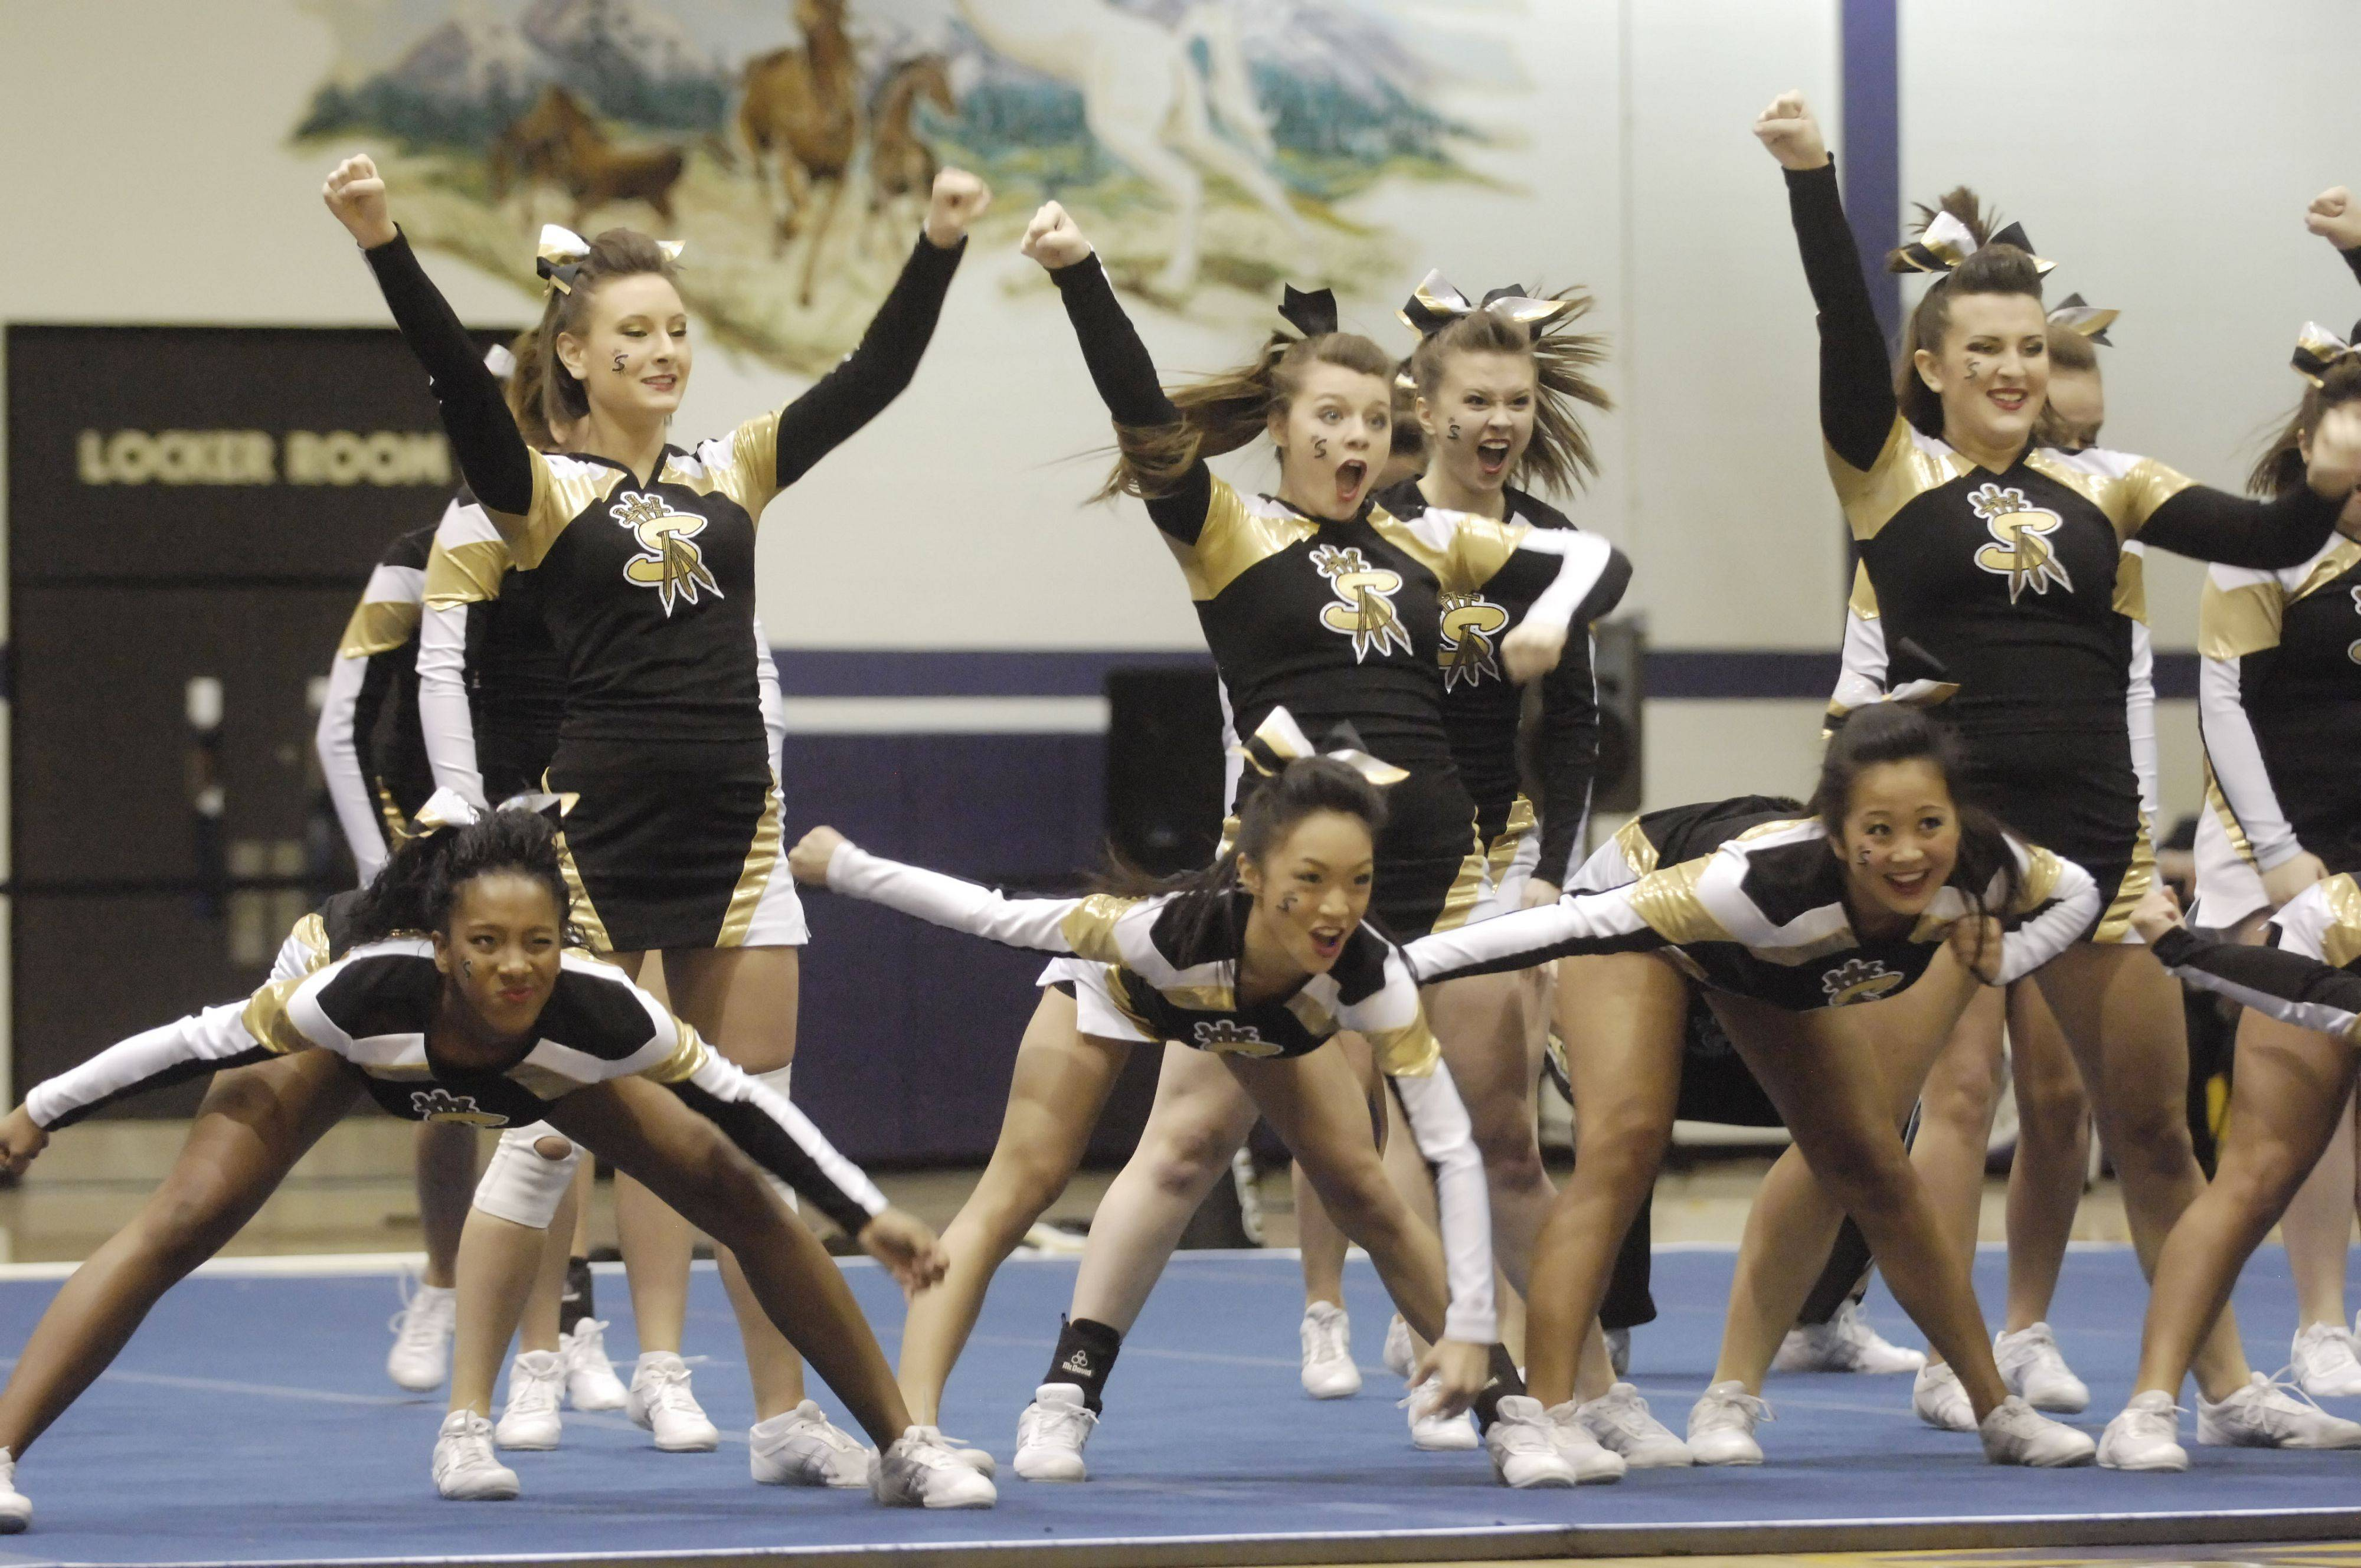 Streamwood competes during Saturday's cheerleading sectional hosted by Rolling Meadows High School.